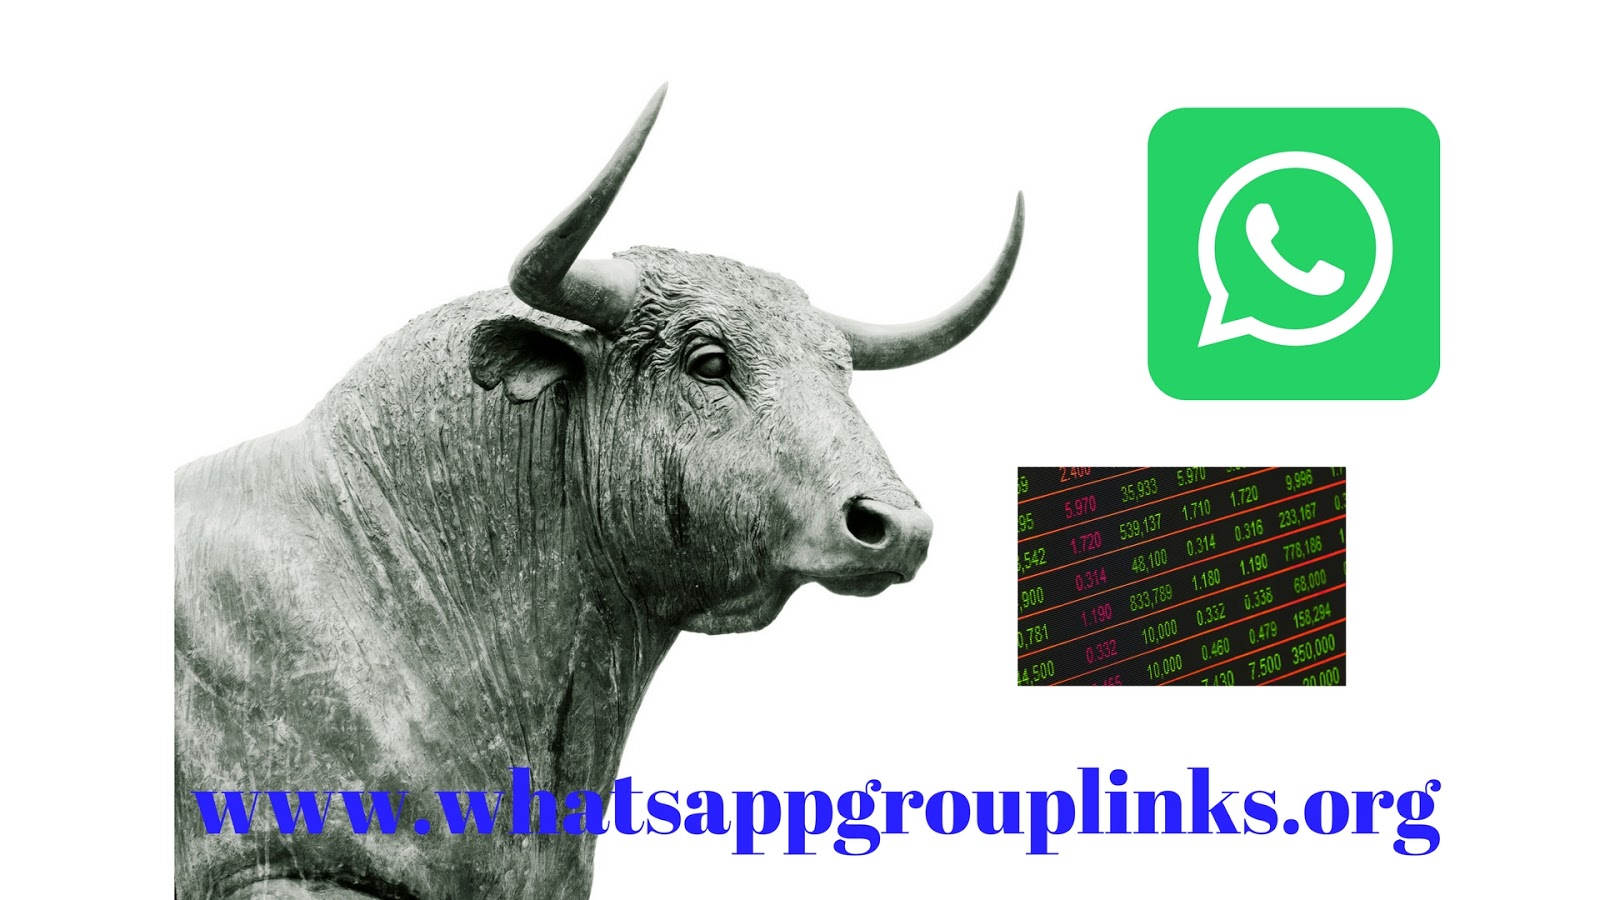 JOIN SHARE AND STOCK MARKET WHATSAPP GROUP LINKS LIST